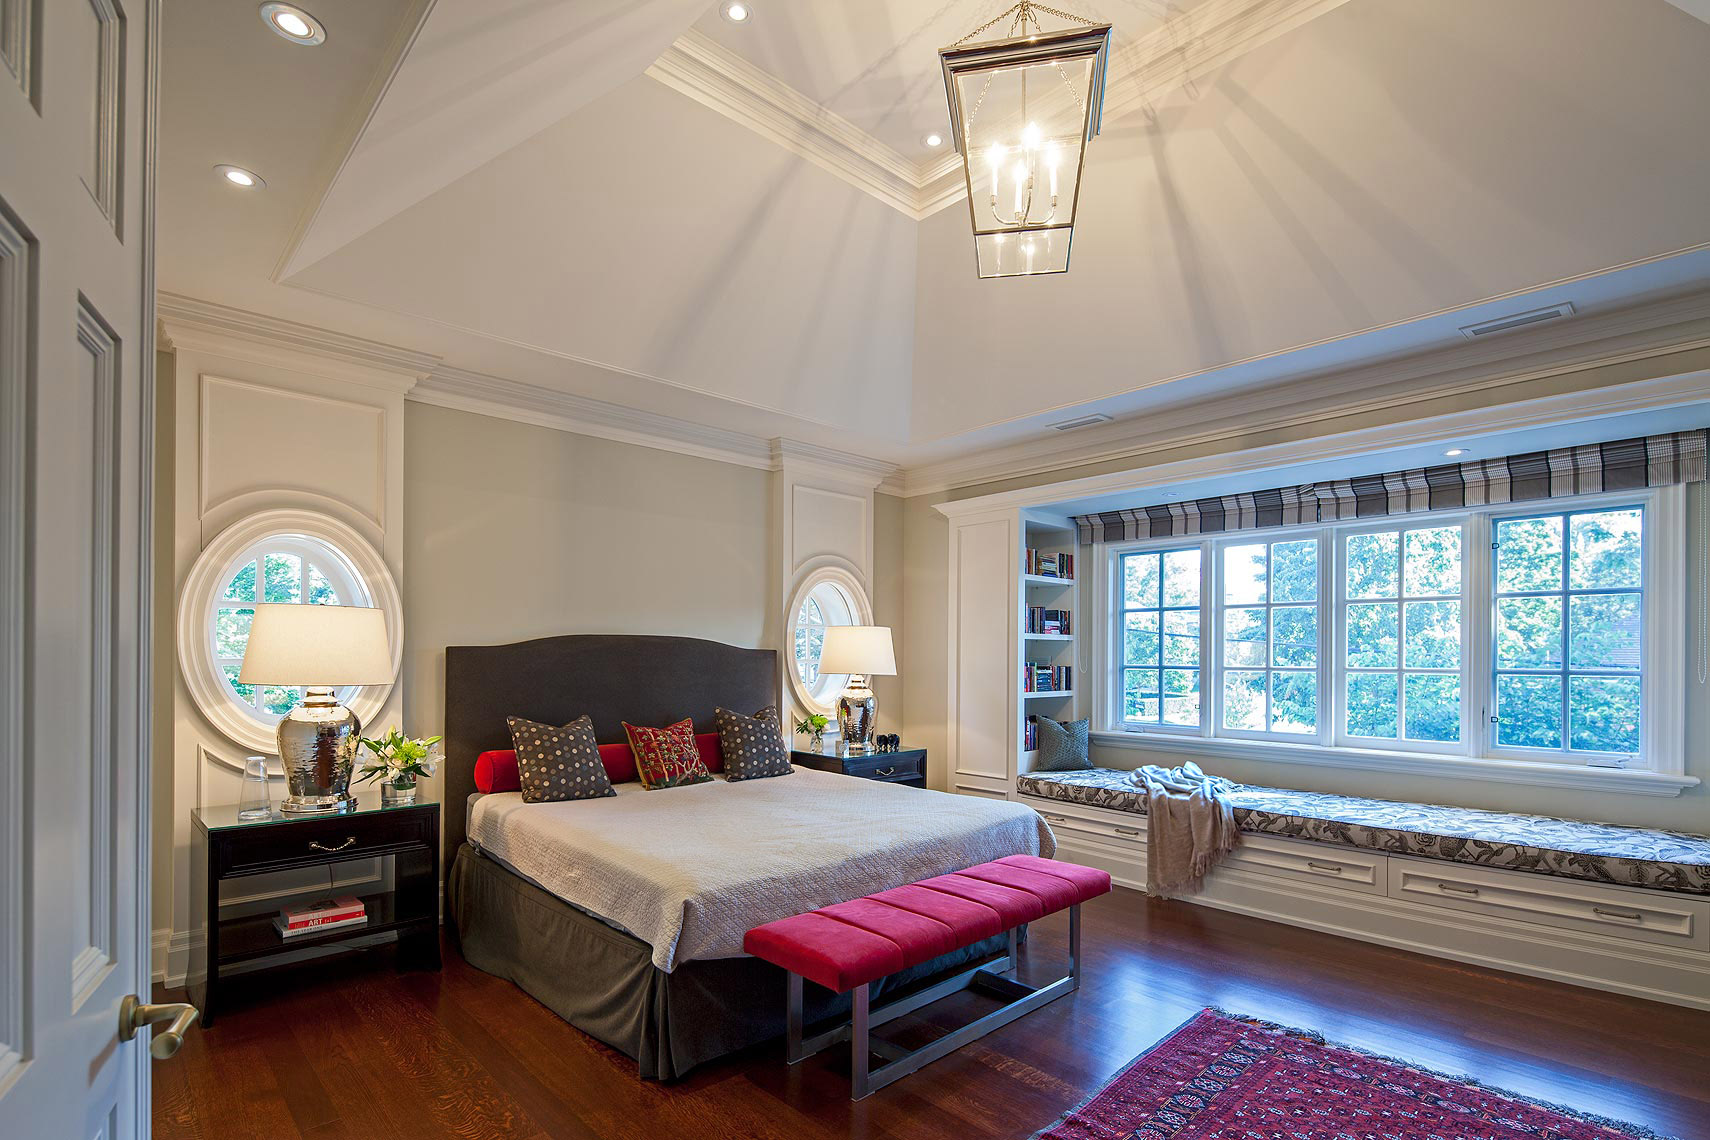 The upholstered headboard is perfectly framed by the panelled wall, which incorporates two oval windows above extra-wide cabinets. The window casings were designed to conceal pull down blinds for privacy. The adjacent wall was built out to incorporate storage and an 11 foot long daybed under the huge window. The serene colour scheme is accented with red elements such as the bench cushion and the throw pillows' large scale prints, which reference the antique fabrics and carpets found elsewhere in the home. Nickel finishes on the lamps and hardware add sparkle.